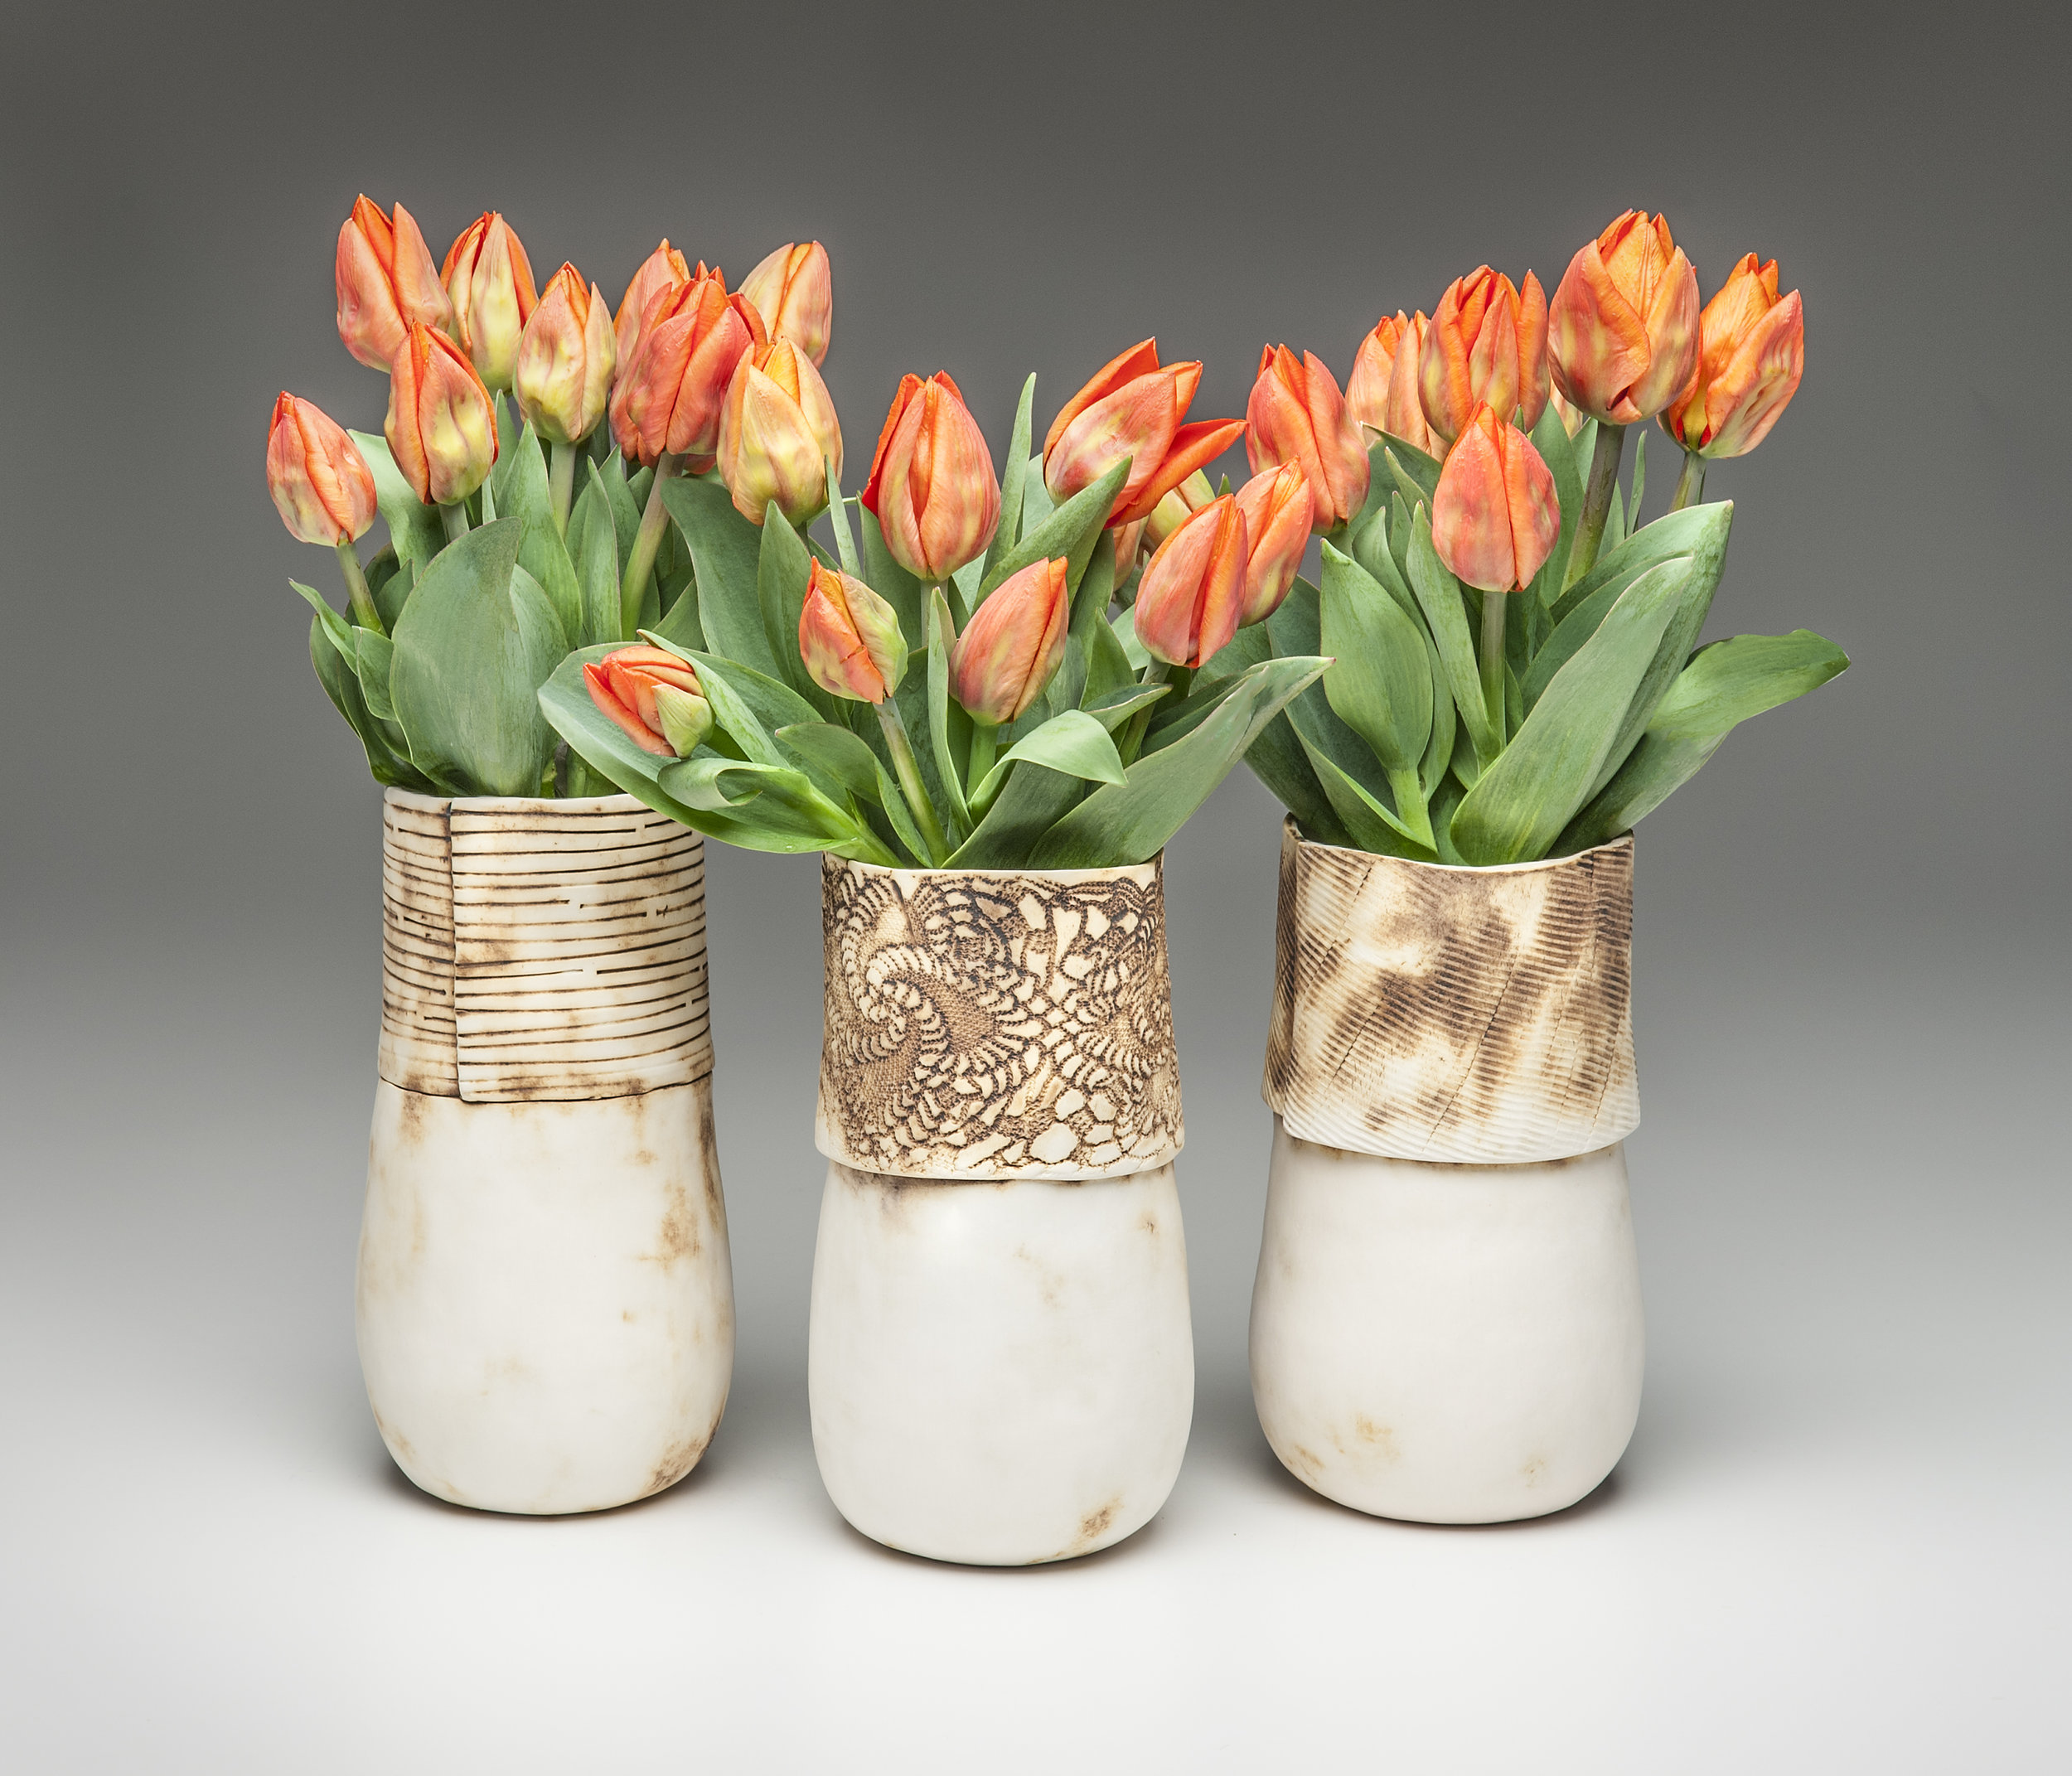 Mothers Day Tulips.jpg